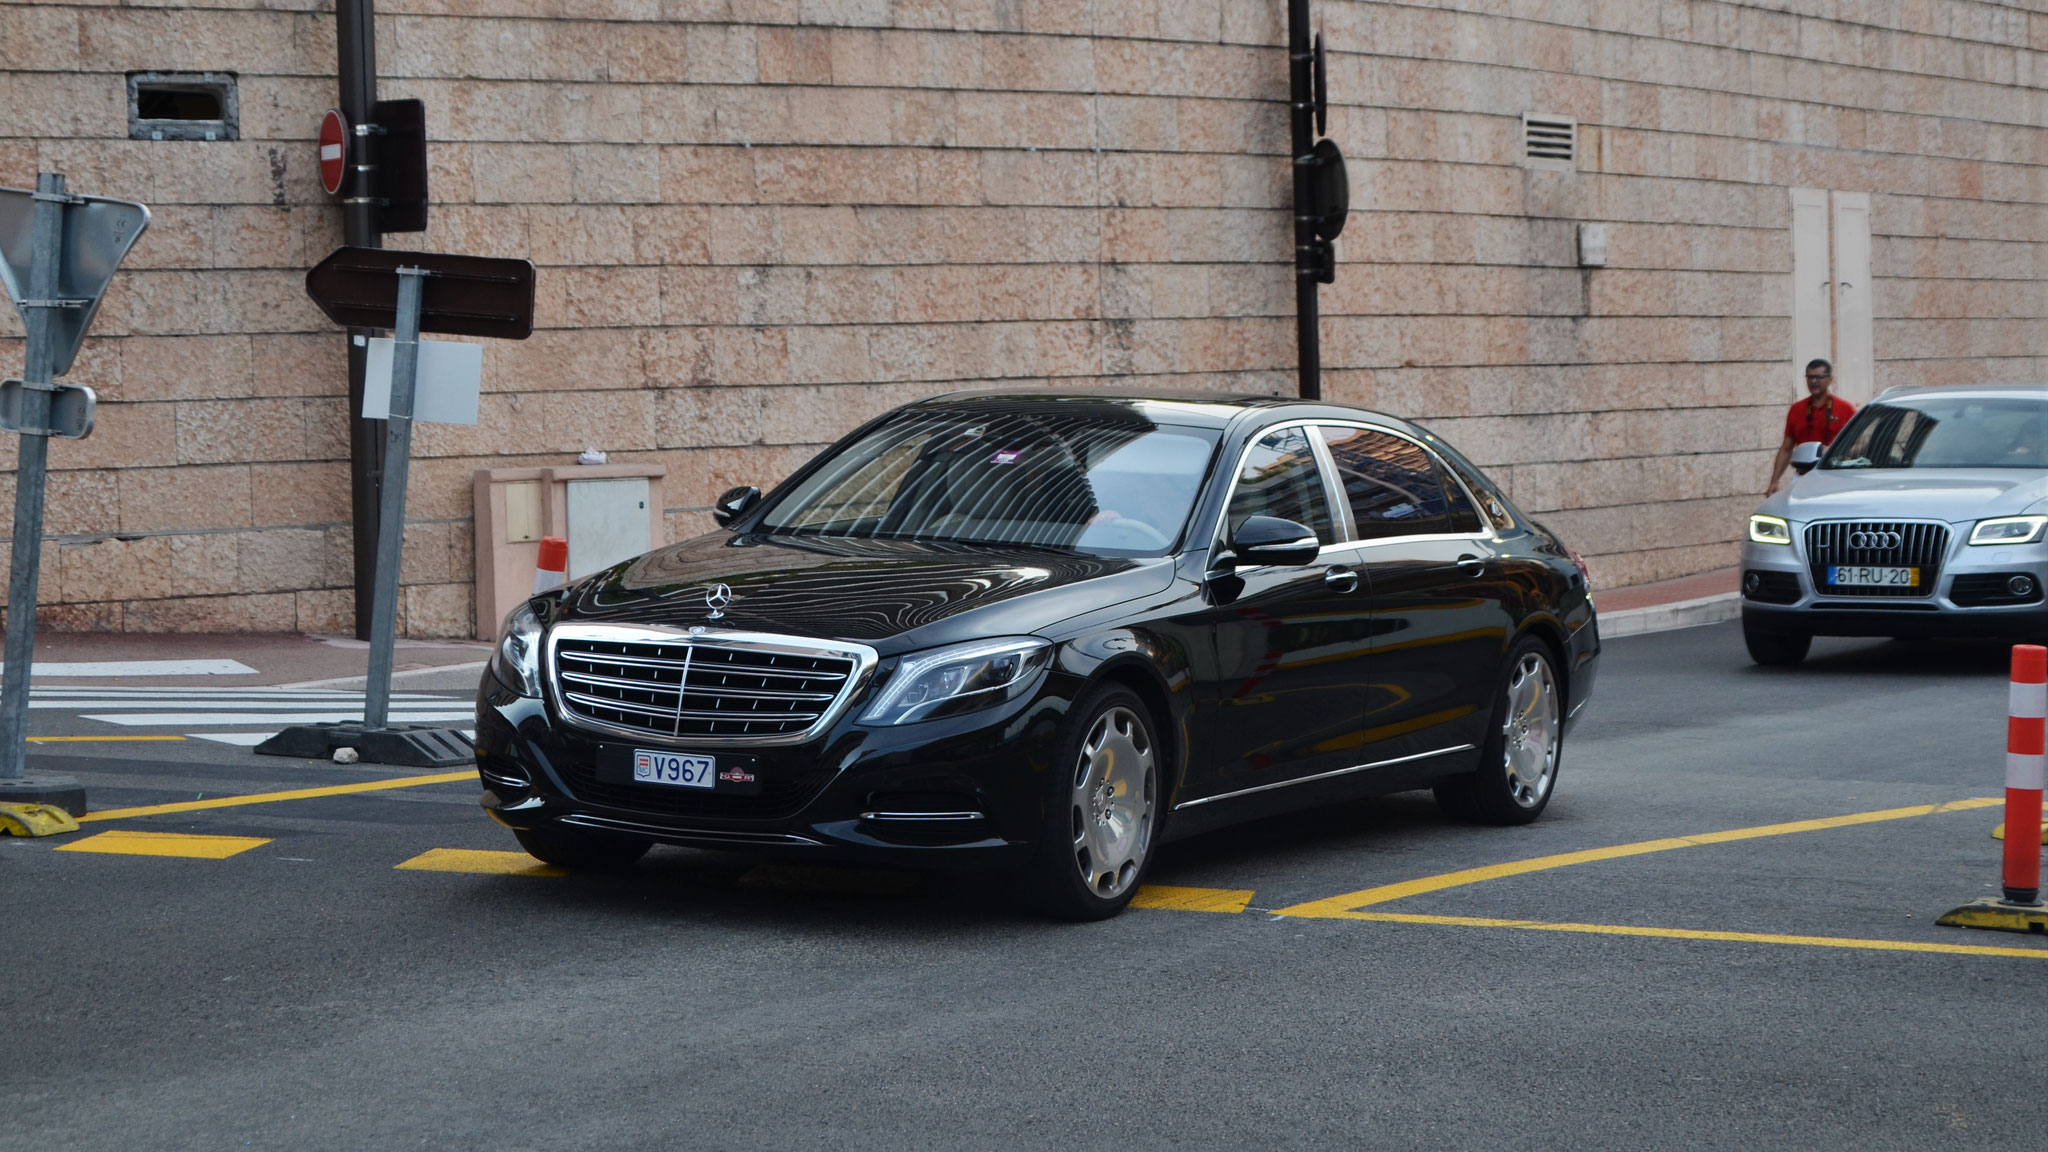 Mercedes Maybach S600 - V967 (MC)